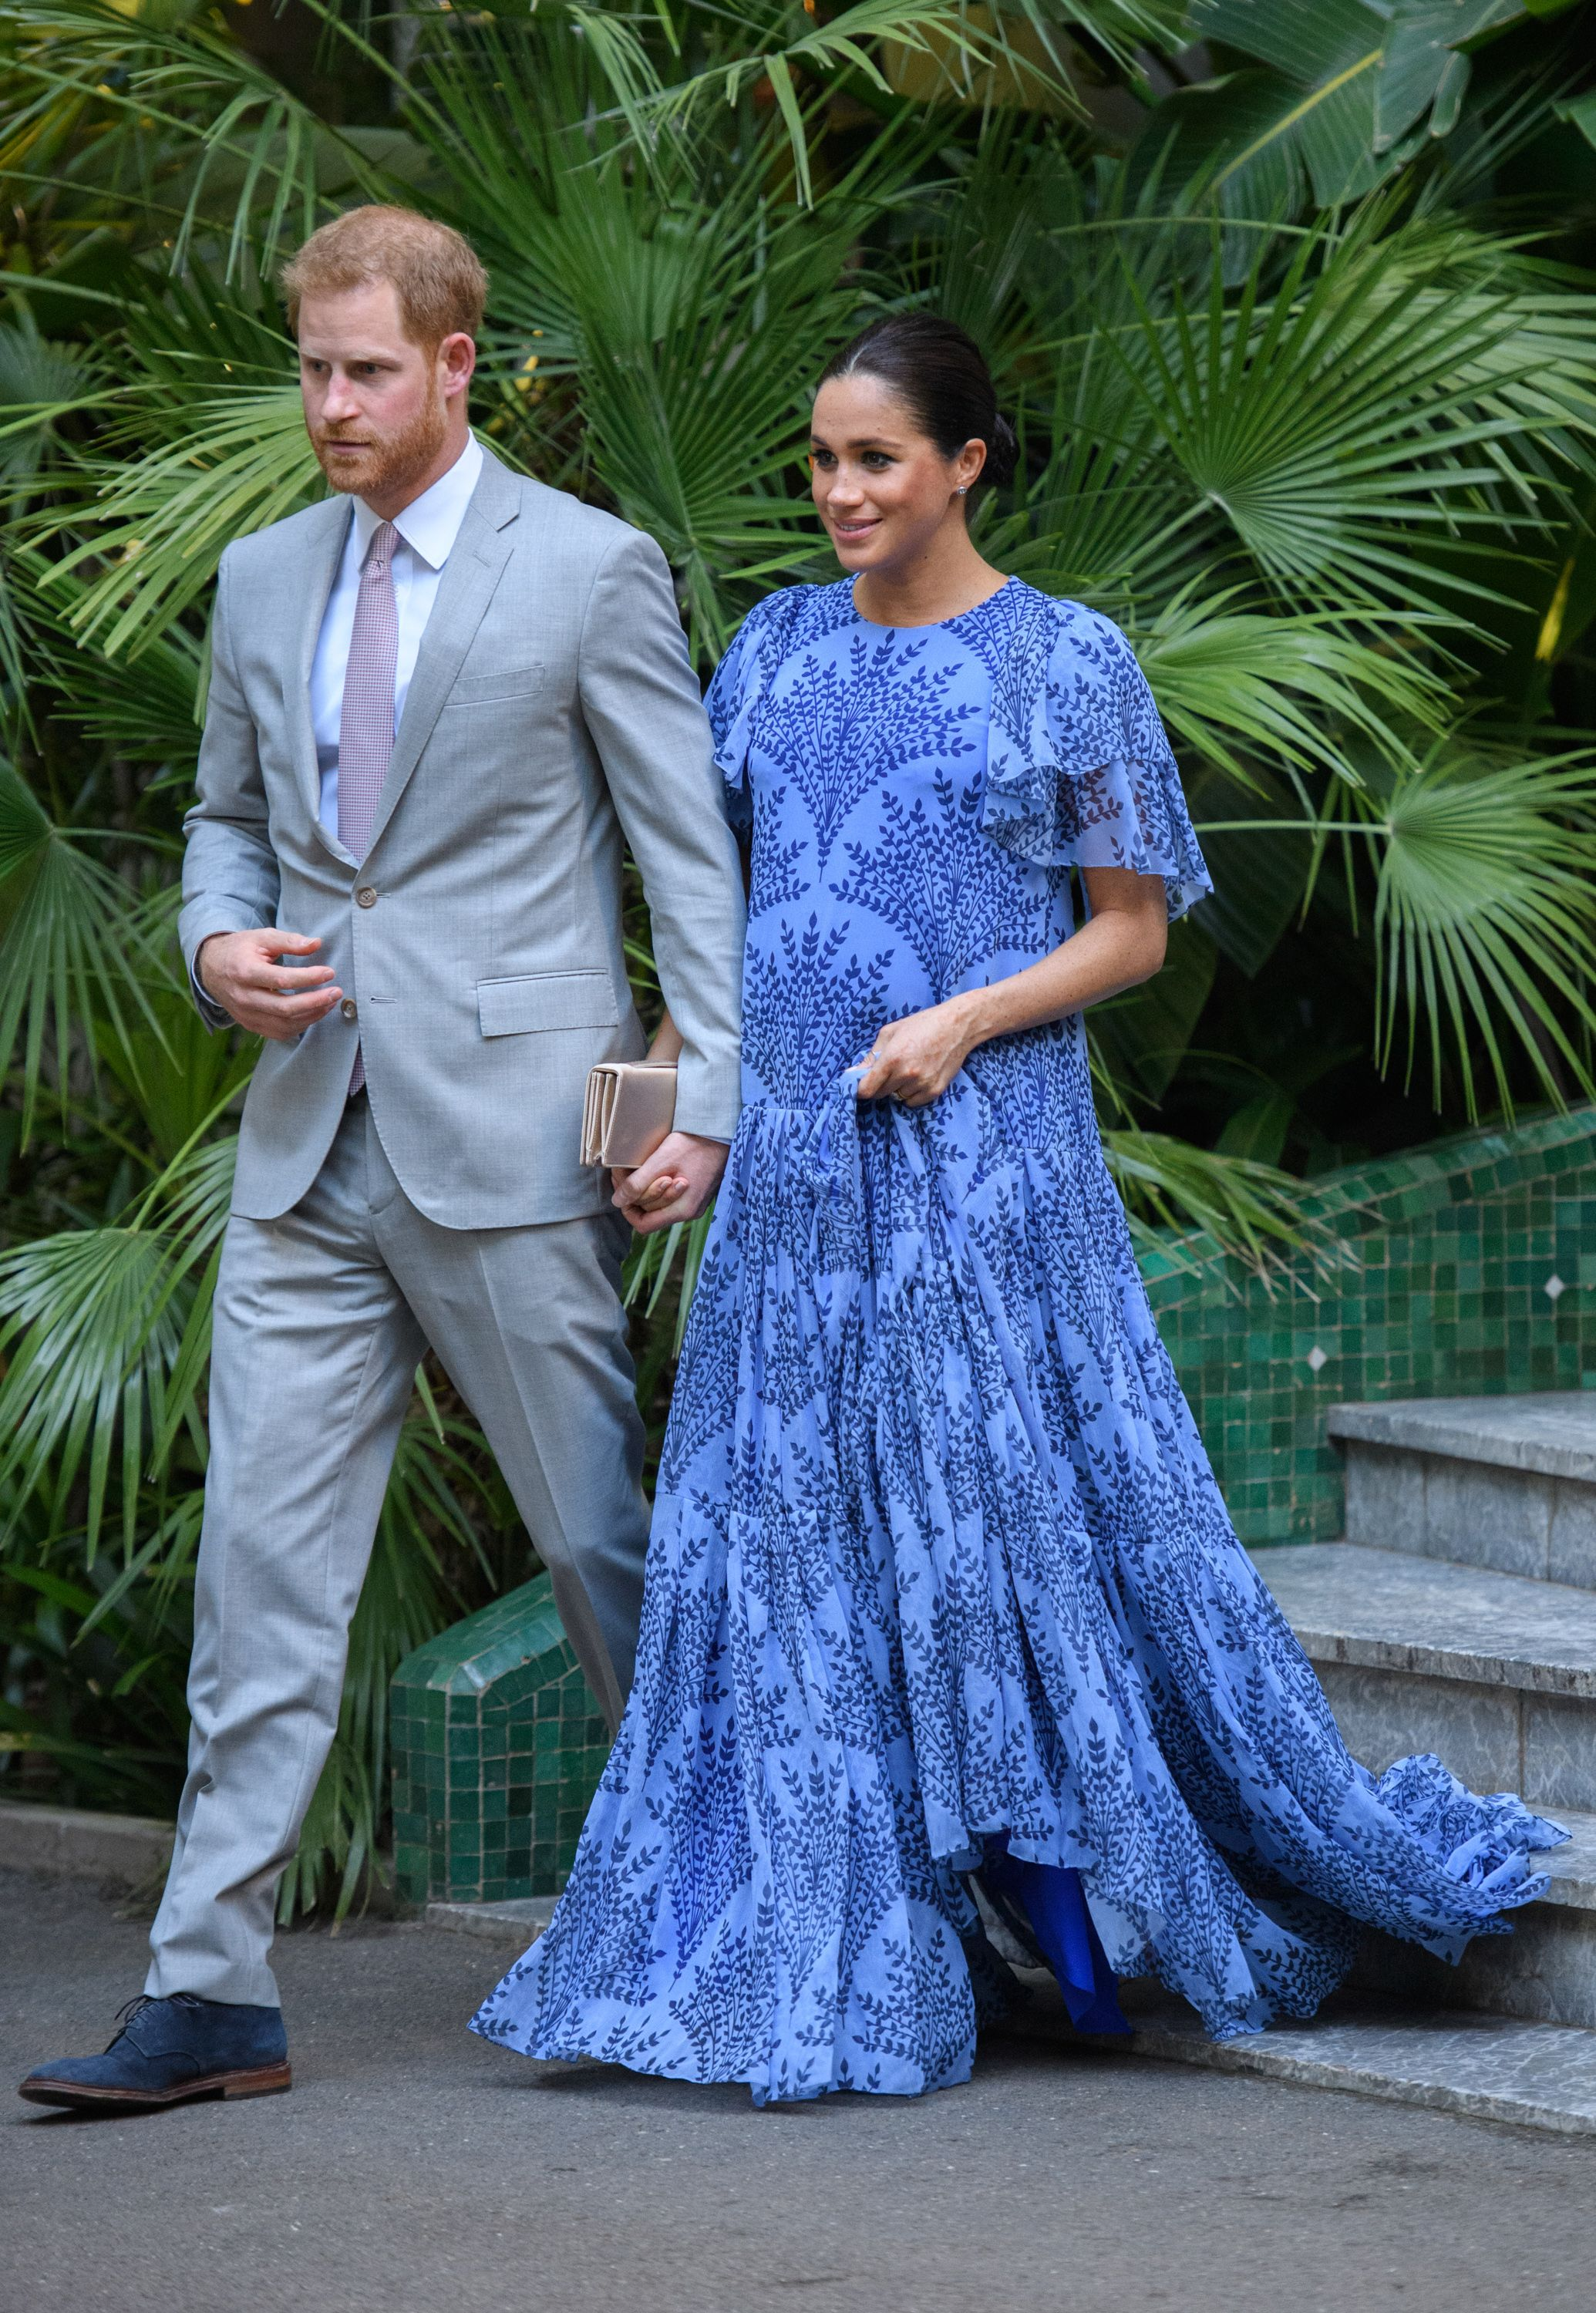 e1aa7a14c80 Meghan Markle In Morocco  Every Outfit The Pregnant Duchess Is Wearing  During Her Royal Visit